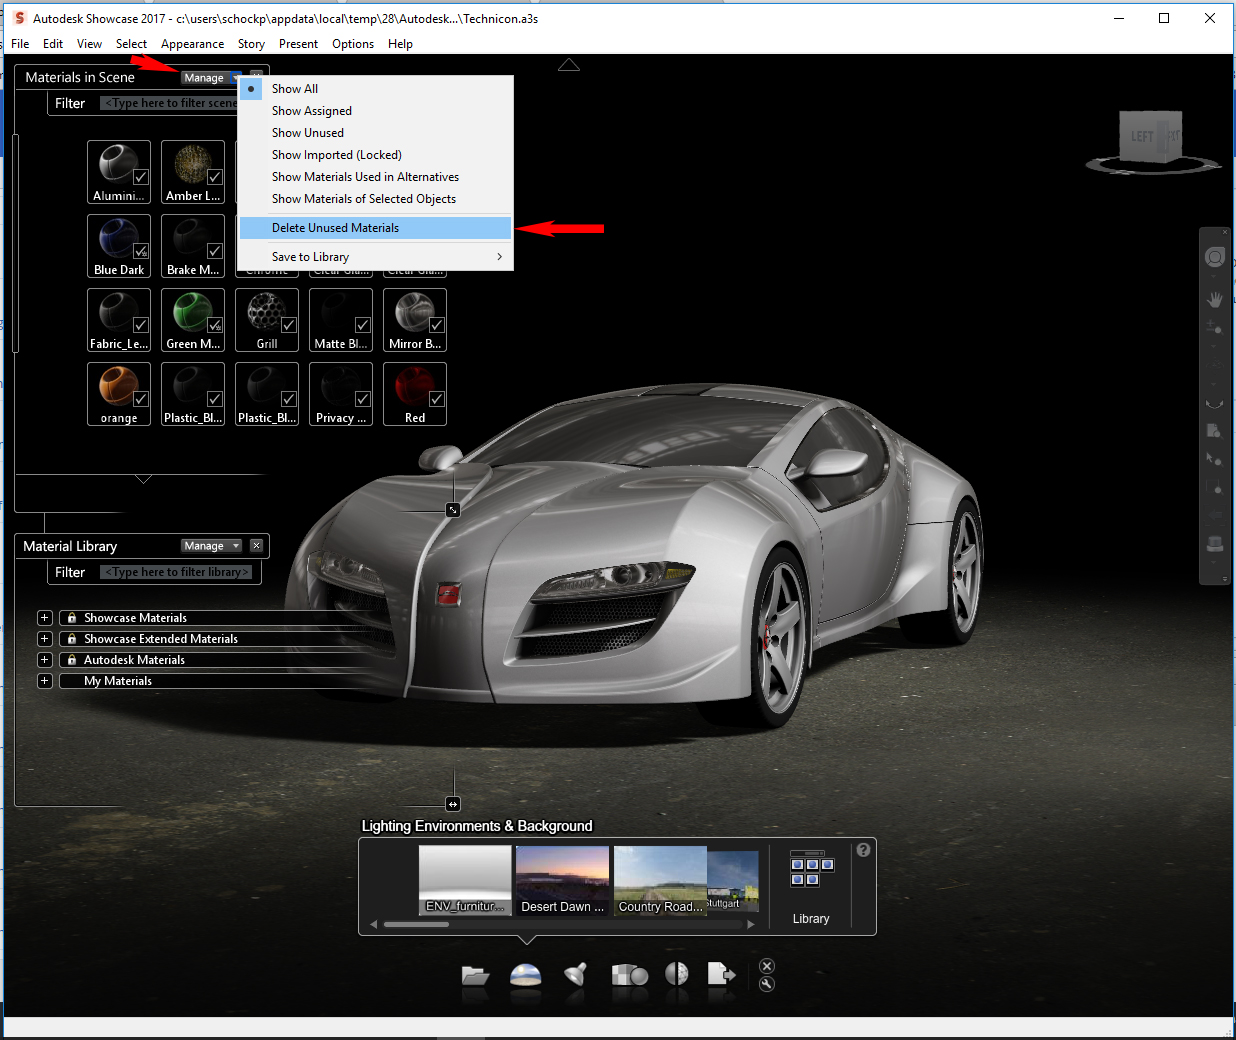 Working with Autodesk Showcase 2017 full license